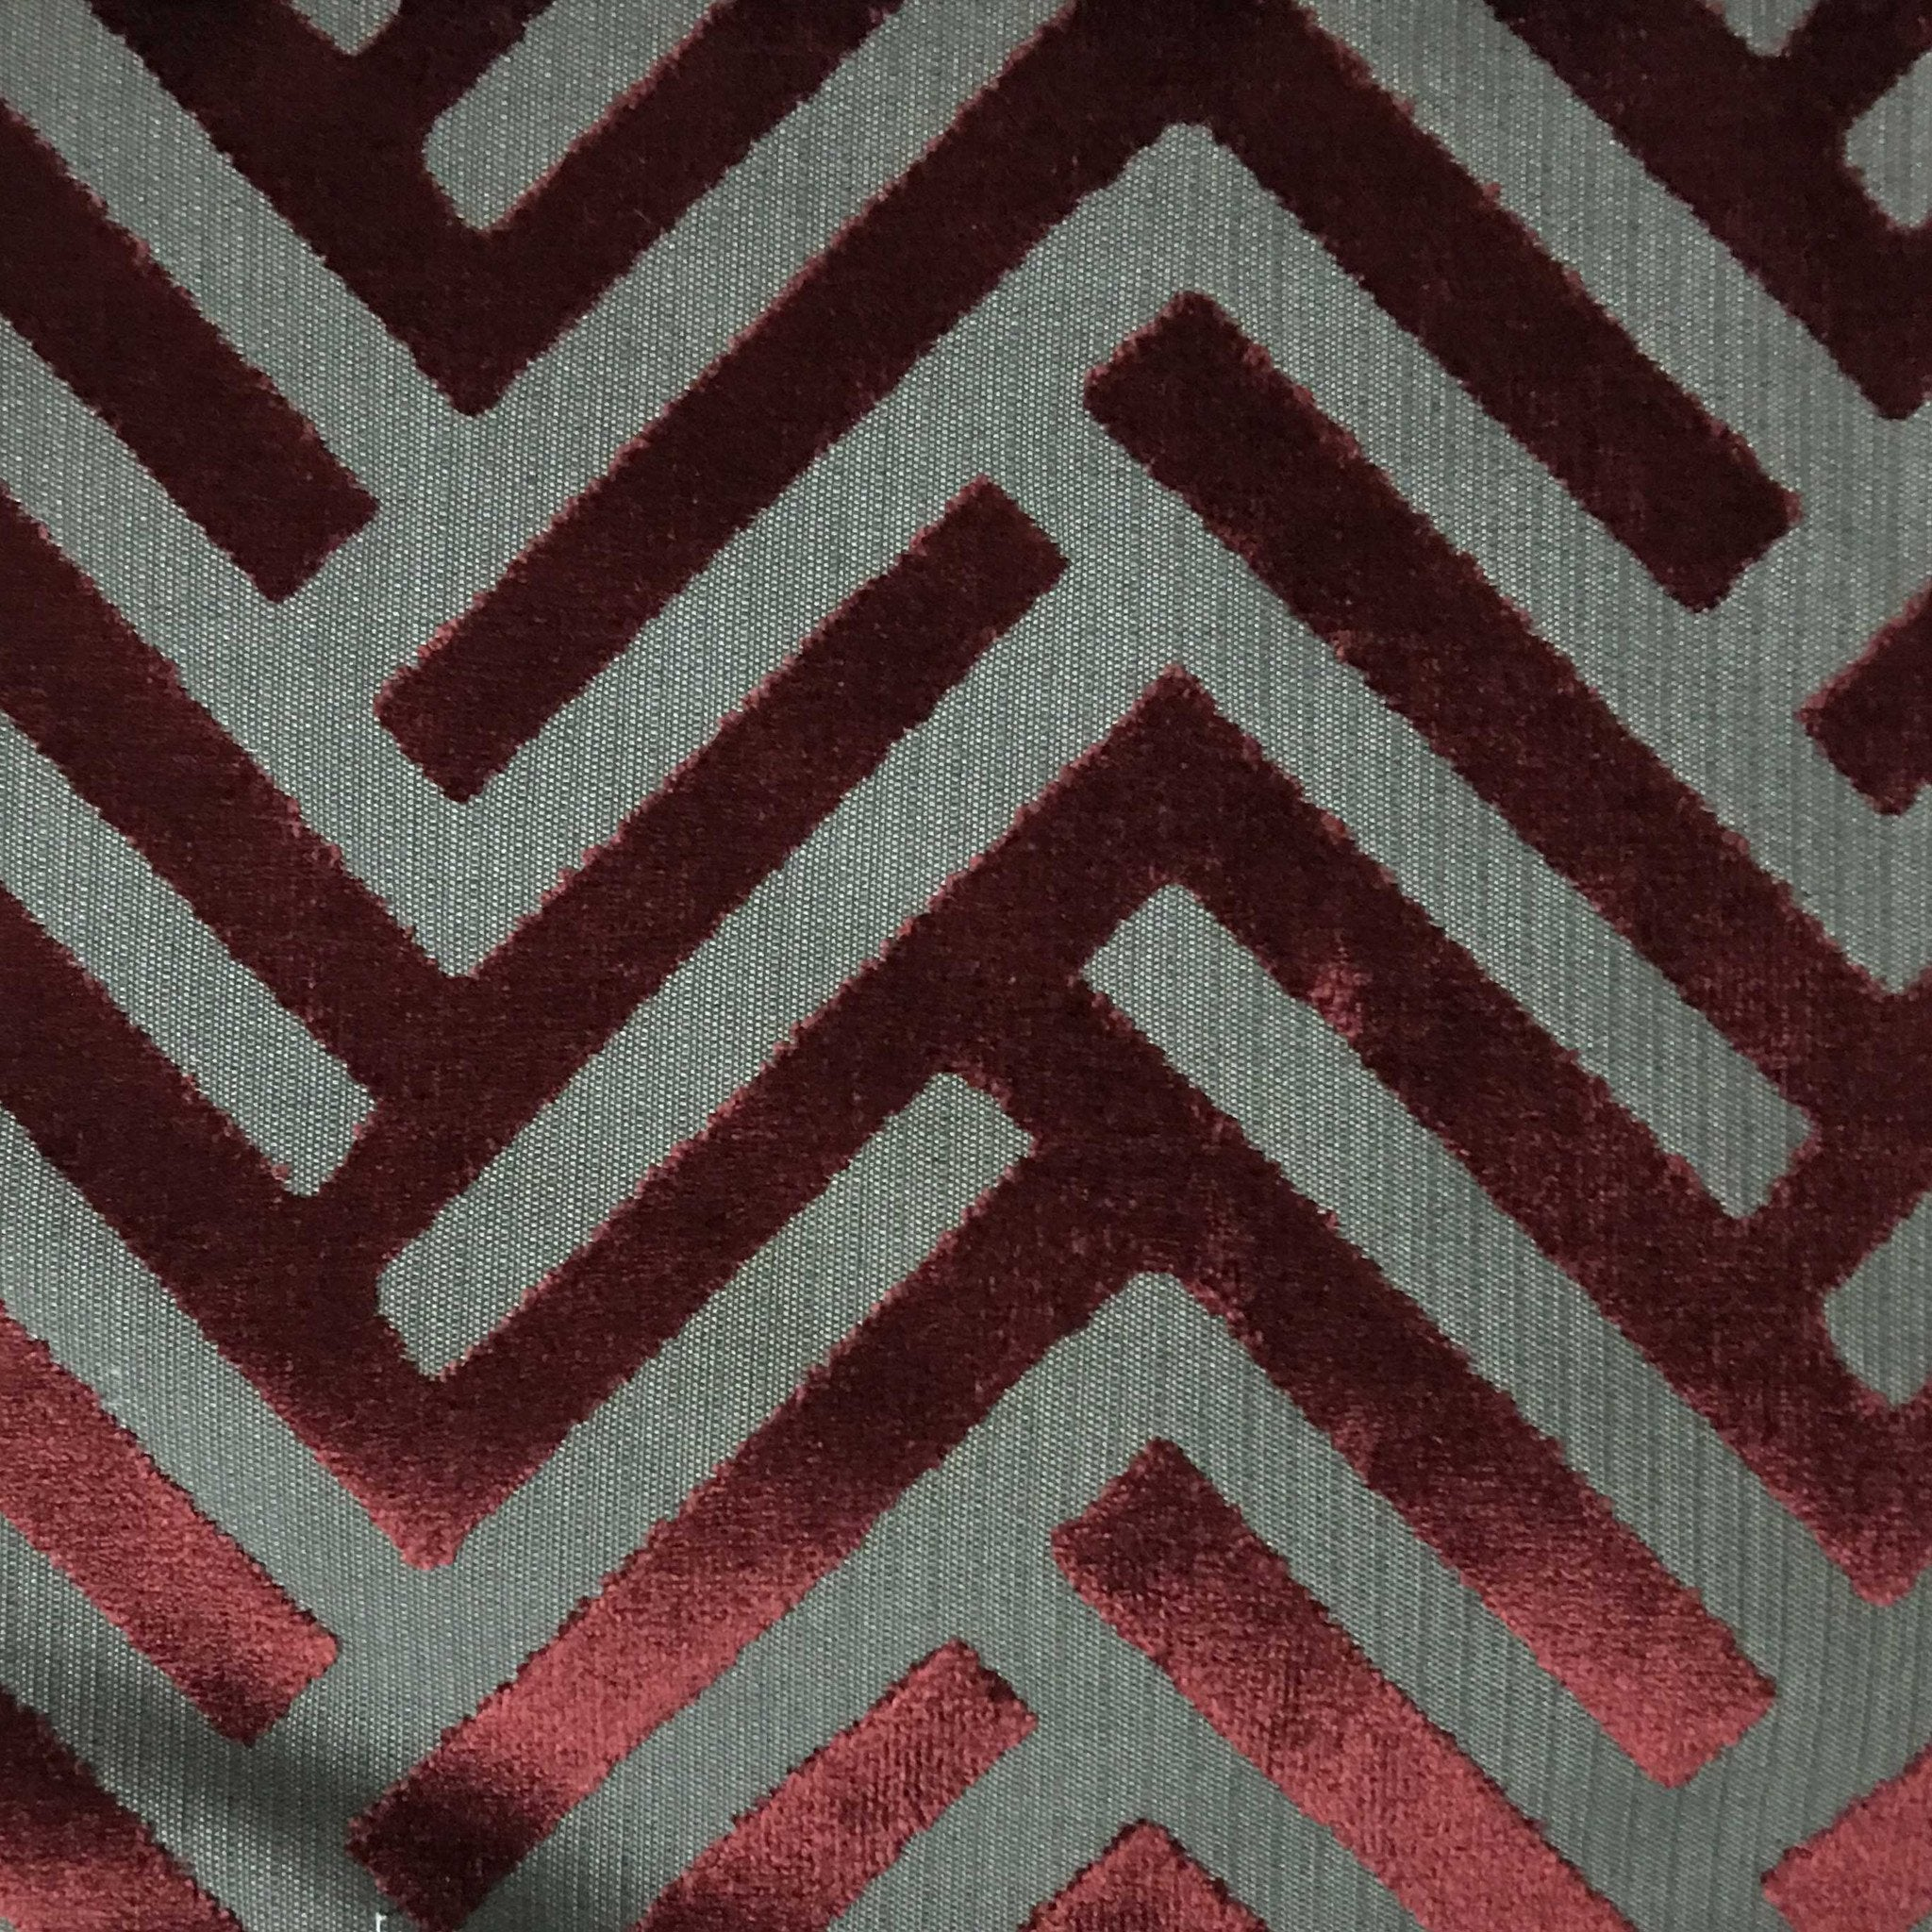 ministry geometric pattern cut velvet upholstery fabric by the yard ebay. Black Bedroom Furniture Sets. Home Design Ideas